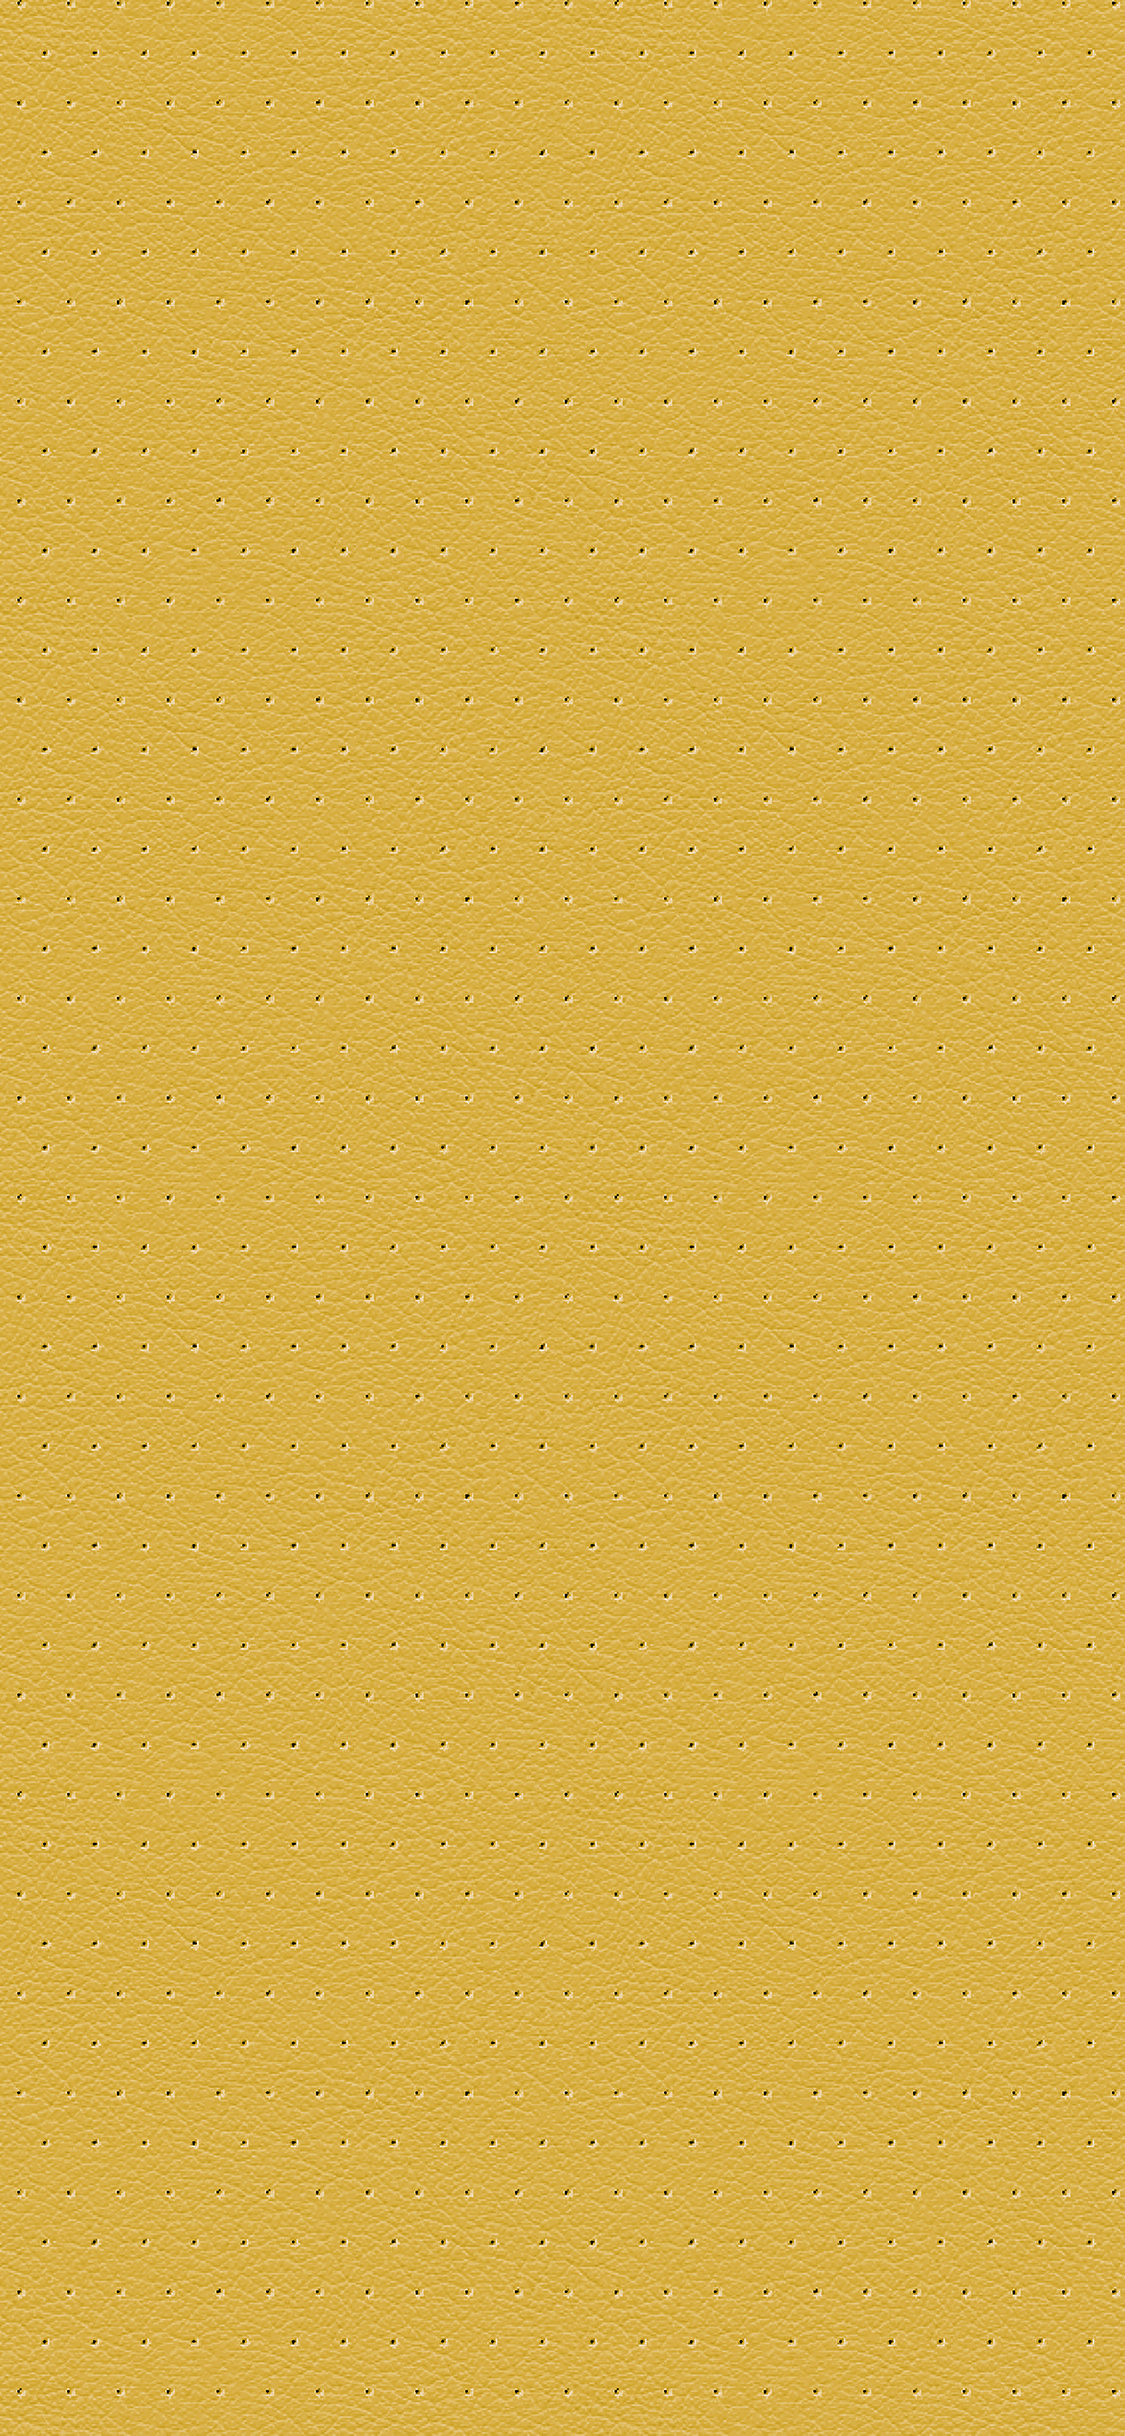 Iphone11papers Com Iphone11 Wallpaper Vb17 Wallpaper Perforated Gold Pattern